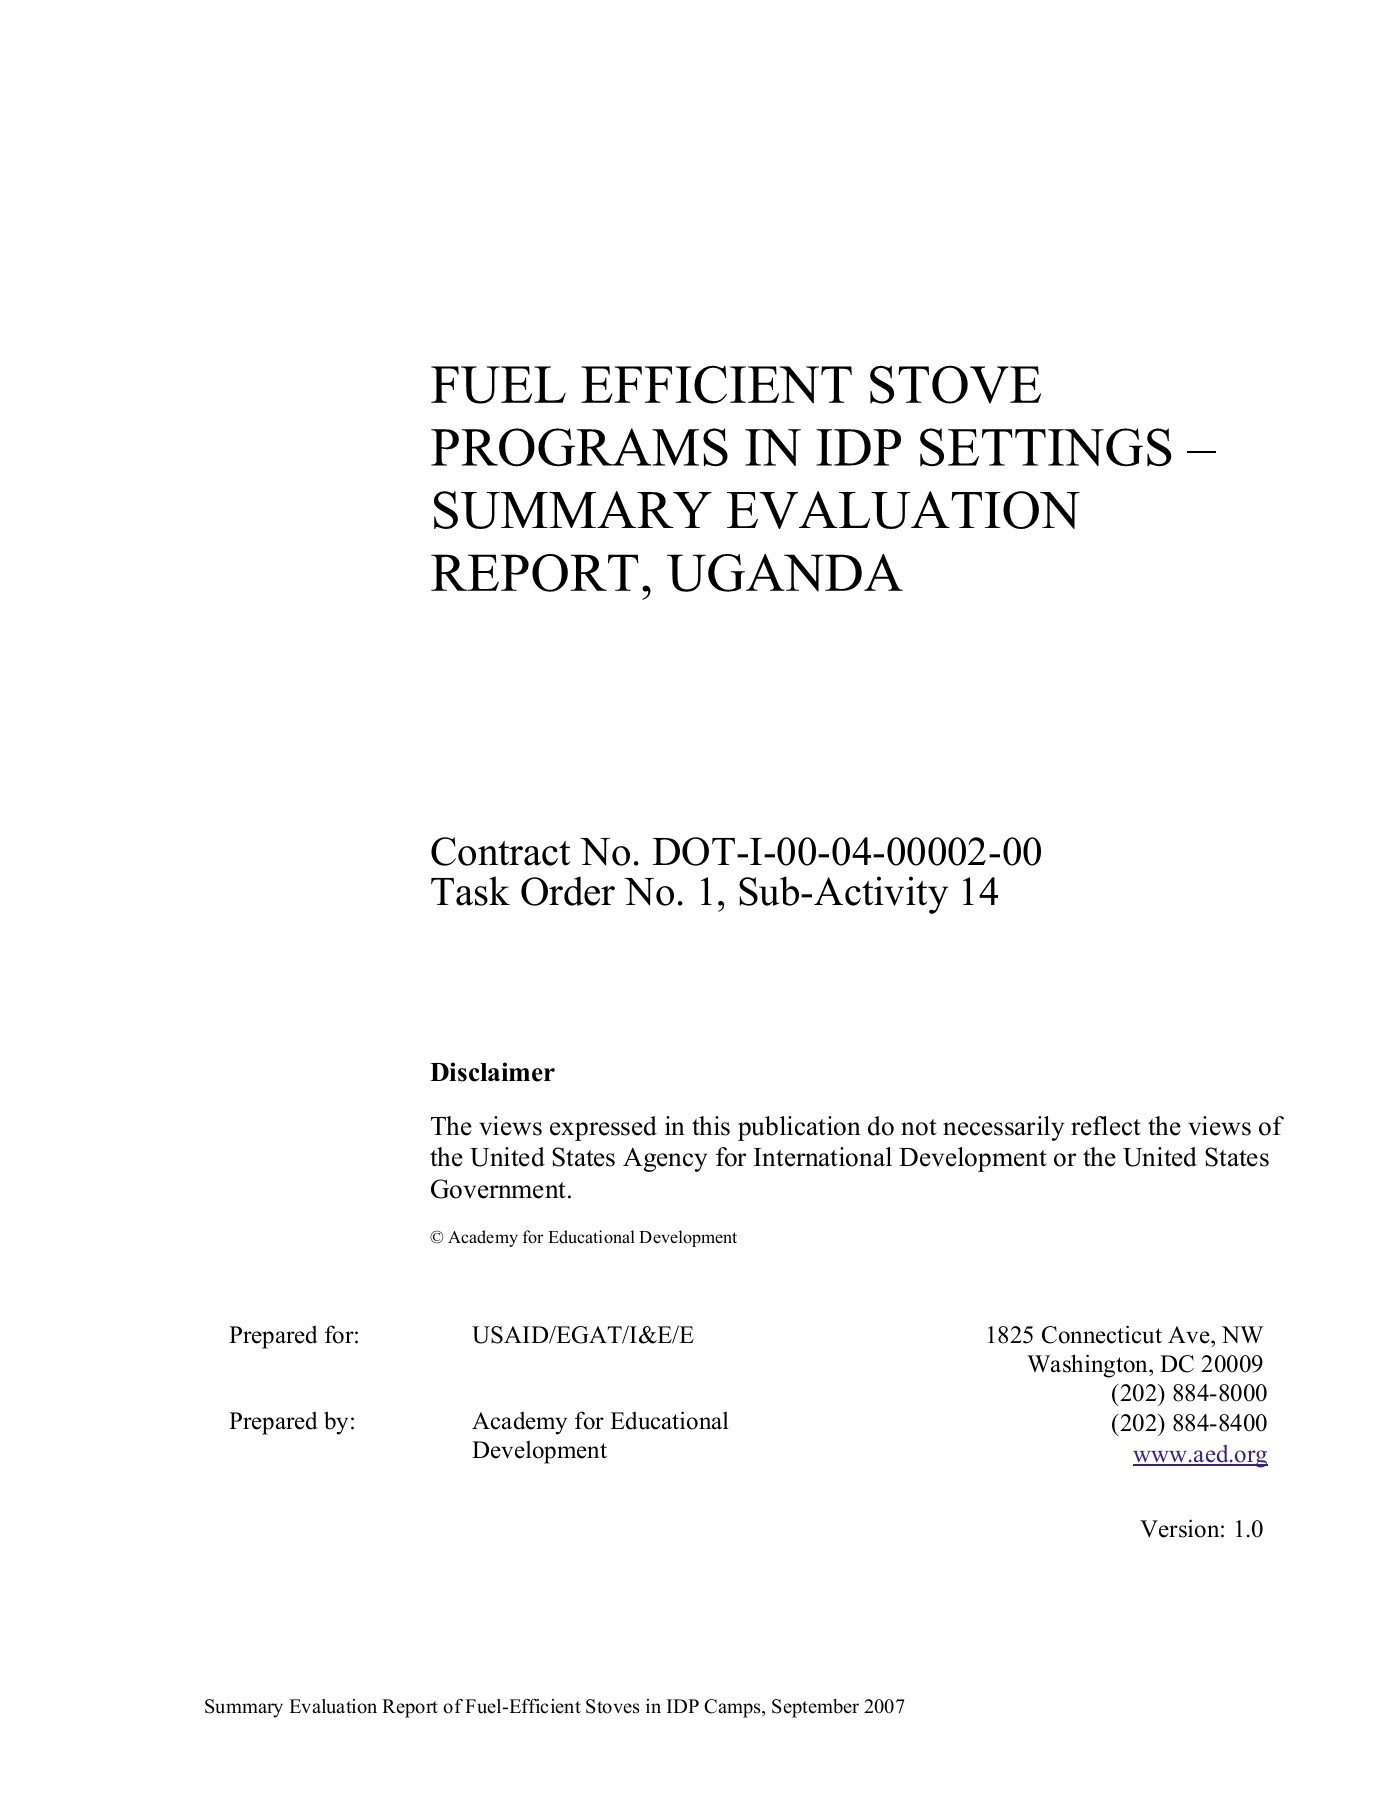 hight resolution of fuel efficient stove programs in idp settings summary pages 1 39 text version fliphtml5